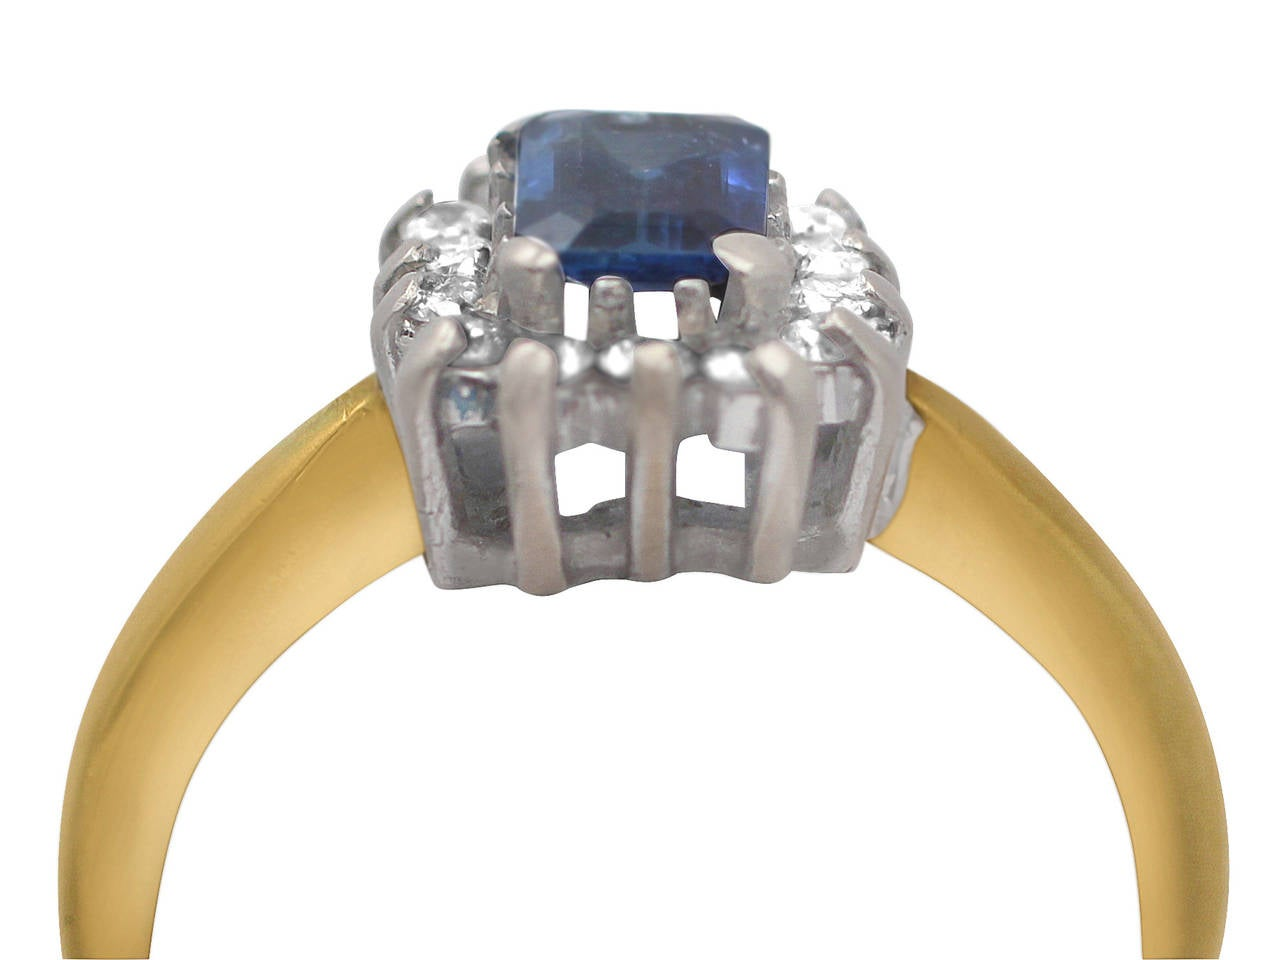 0.48Ct Sapphire & 0.35Ct Diamond, 18k Yellow Gold Cluster Ring - Vintage 2